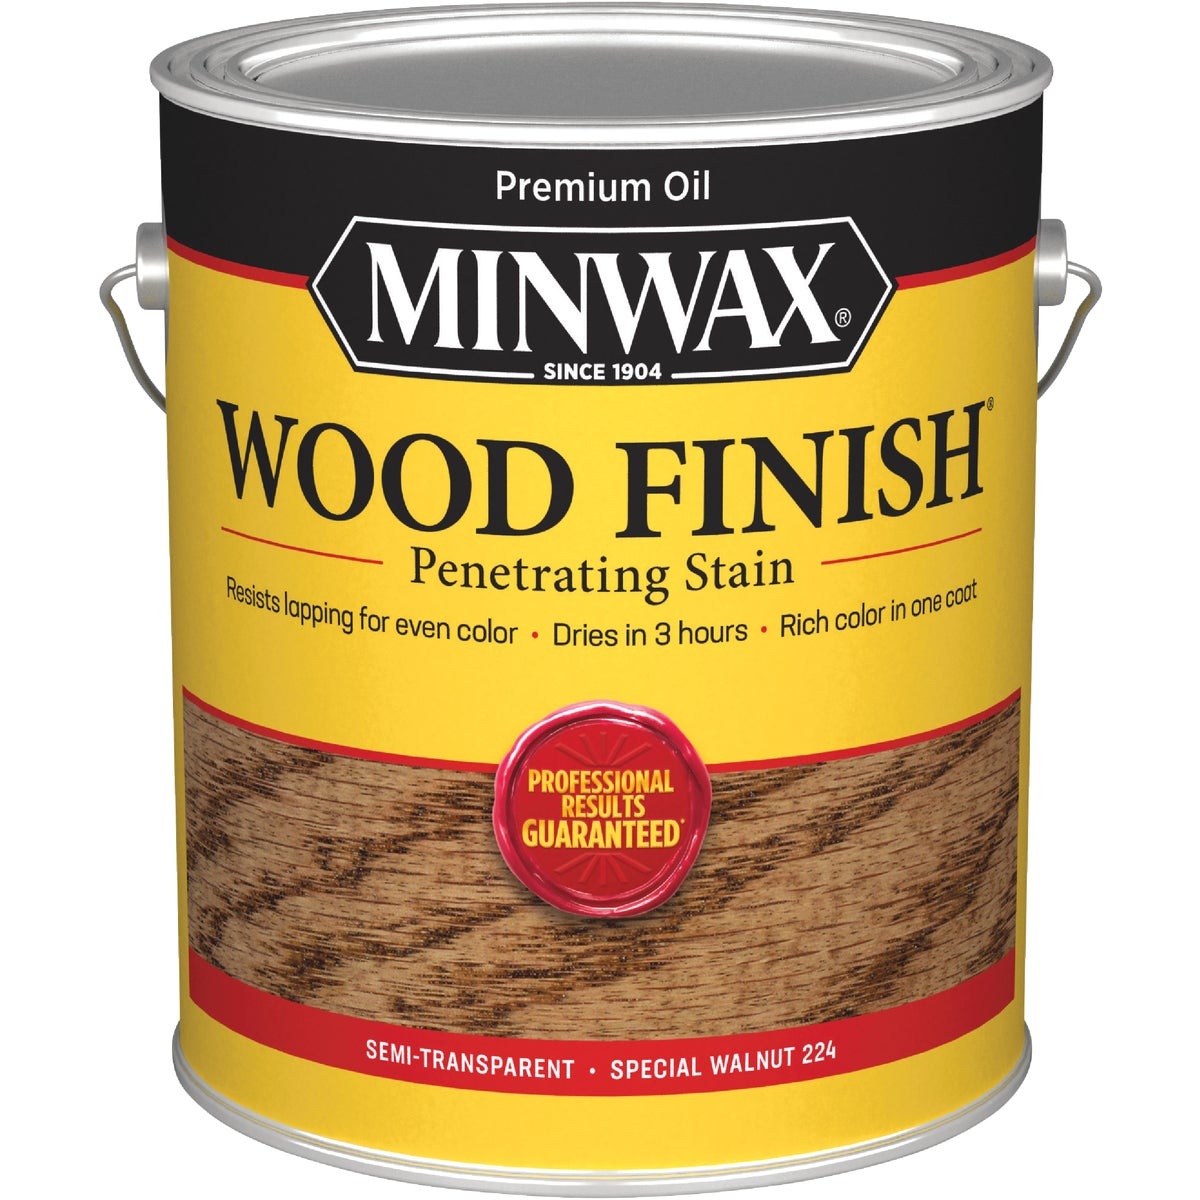 VOC SP WALNUT WOOD STAIN - 710760000 by Minwax Company